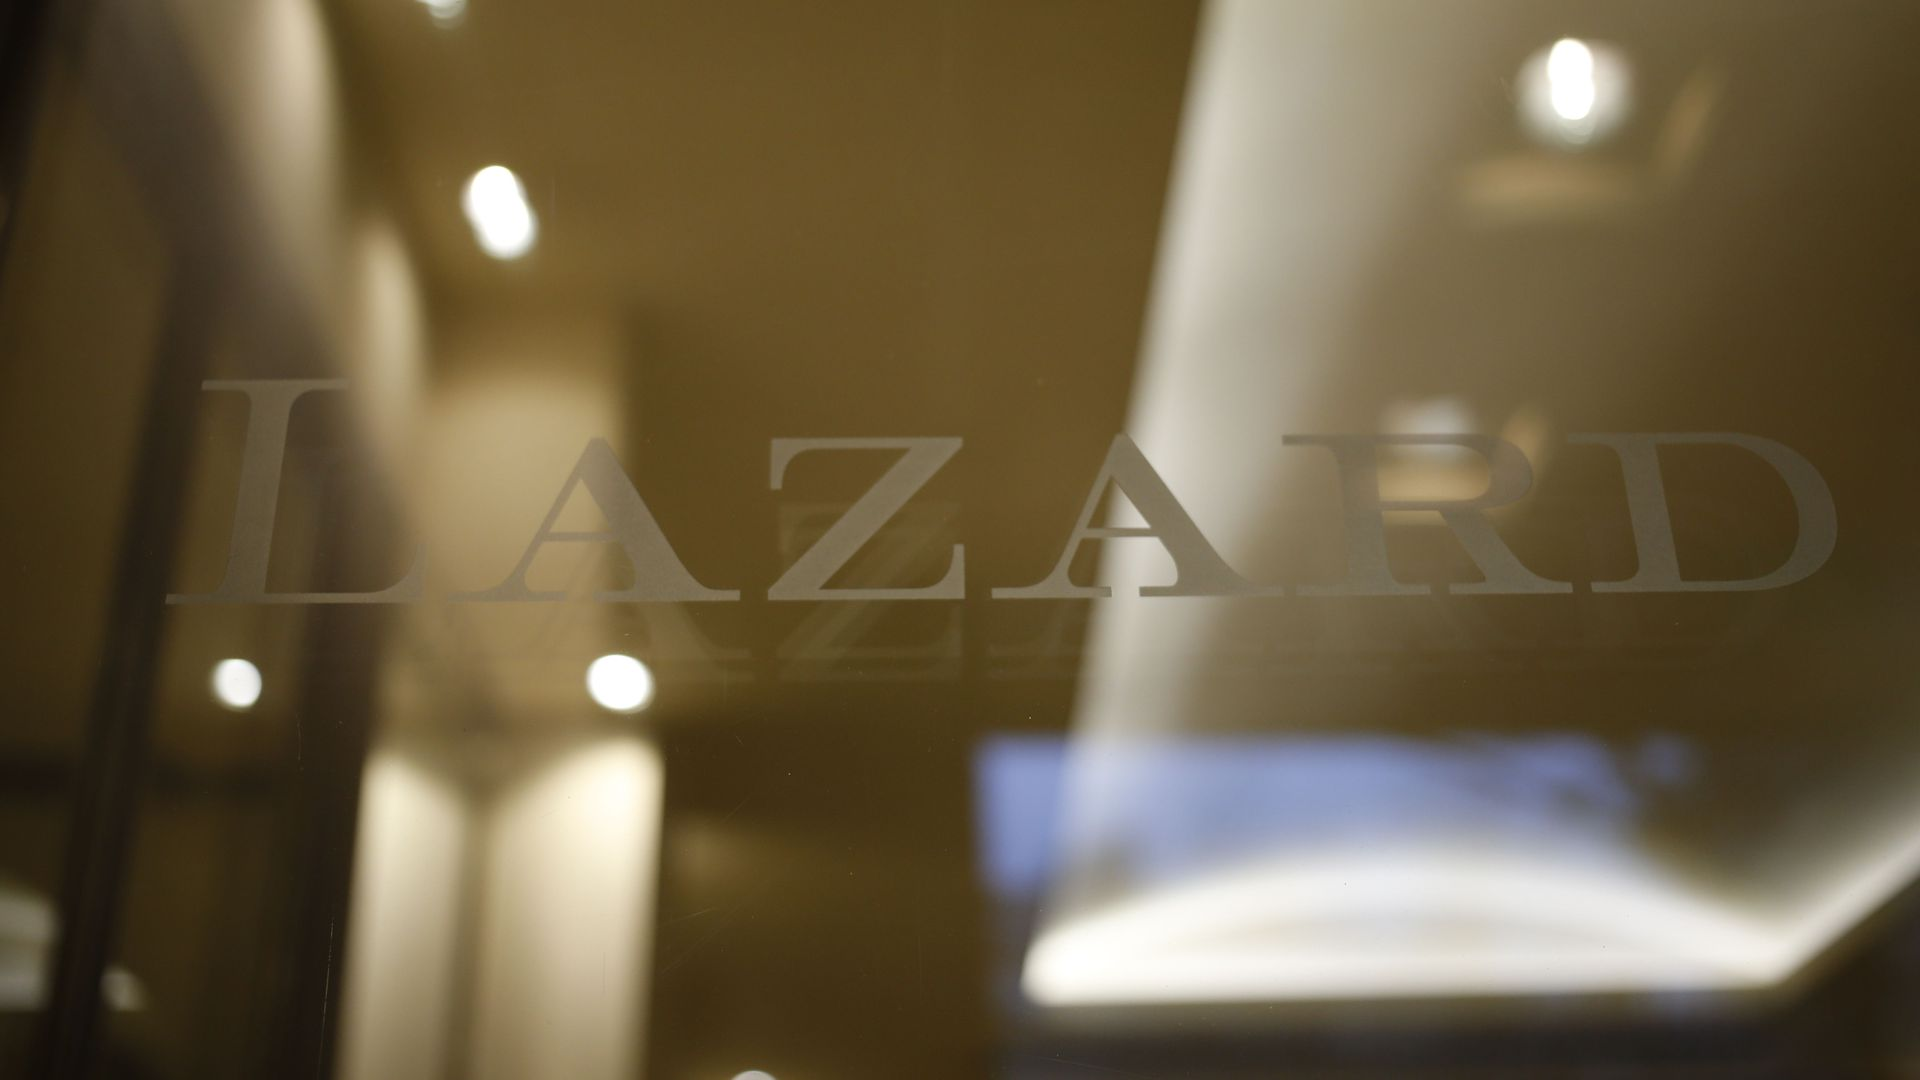 The logo of Lazard on a glass door.